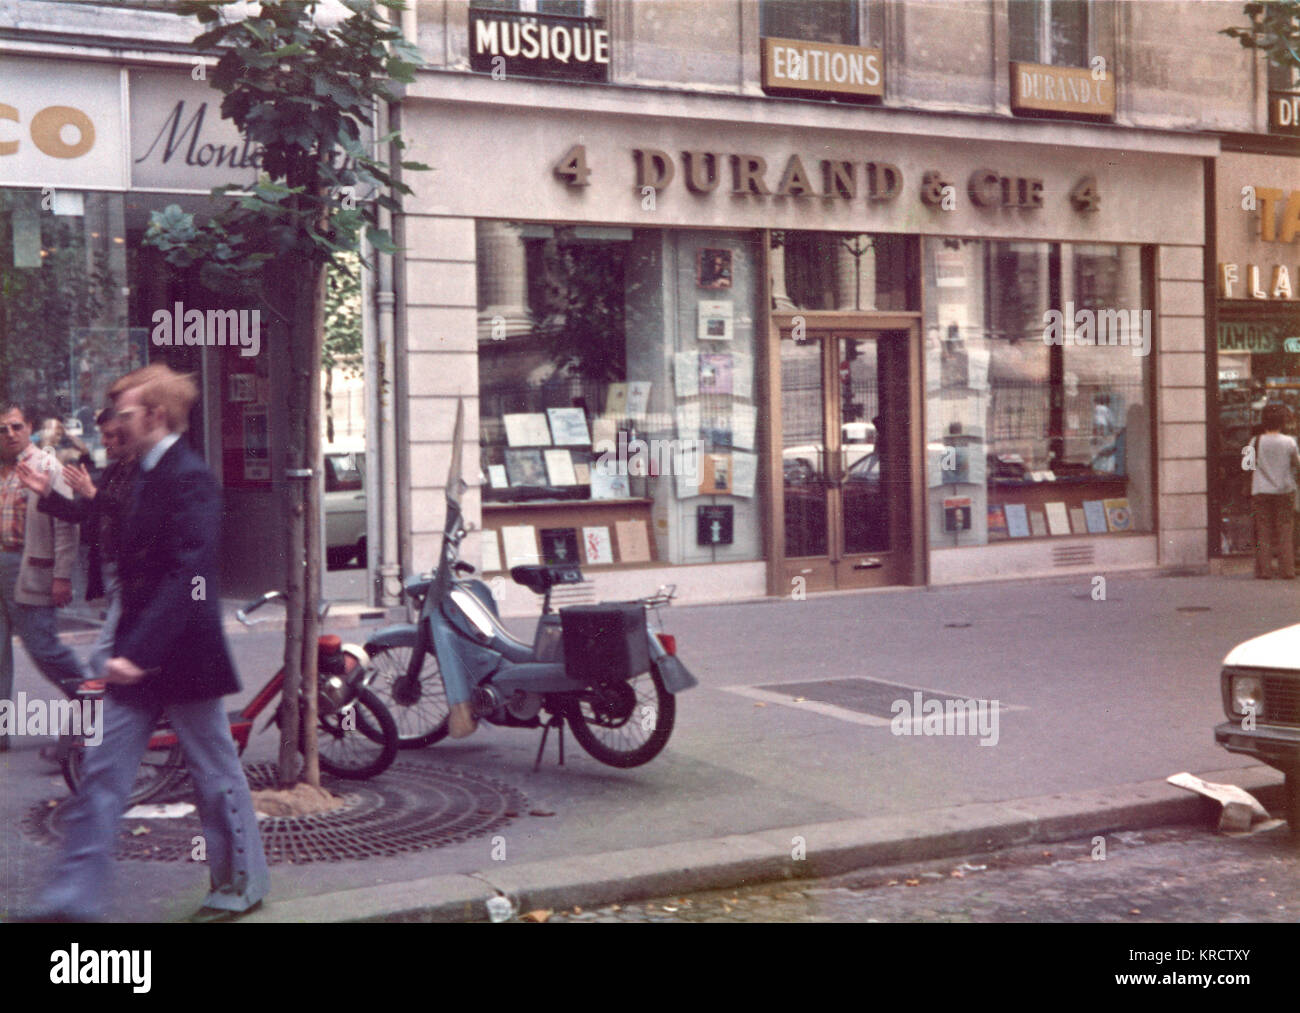 The front entrance to the shop of Durand & Cie, music publishers, Paris, France. Date: early 1960s - Stock Image